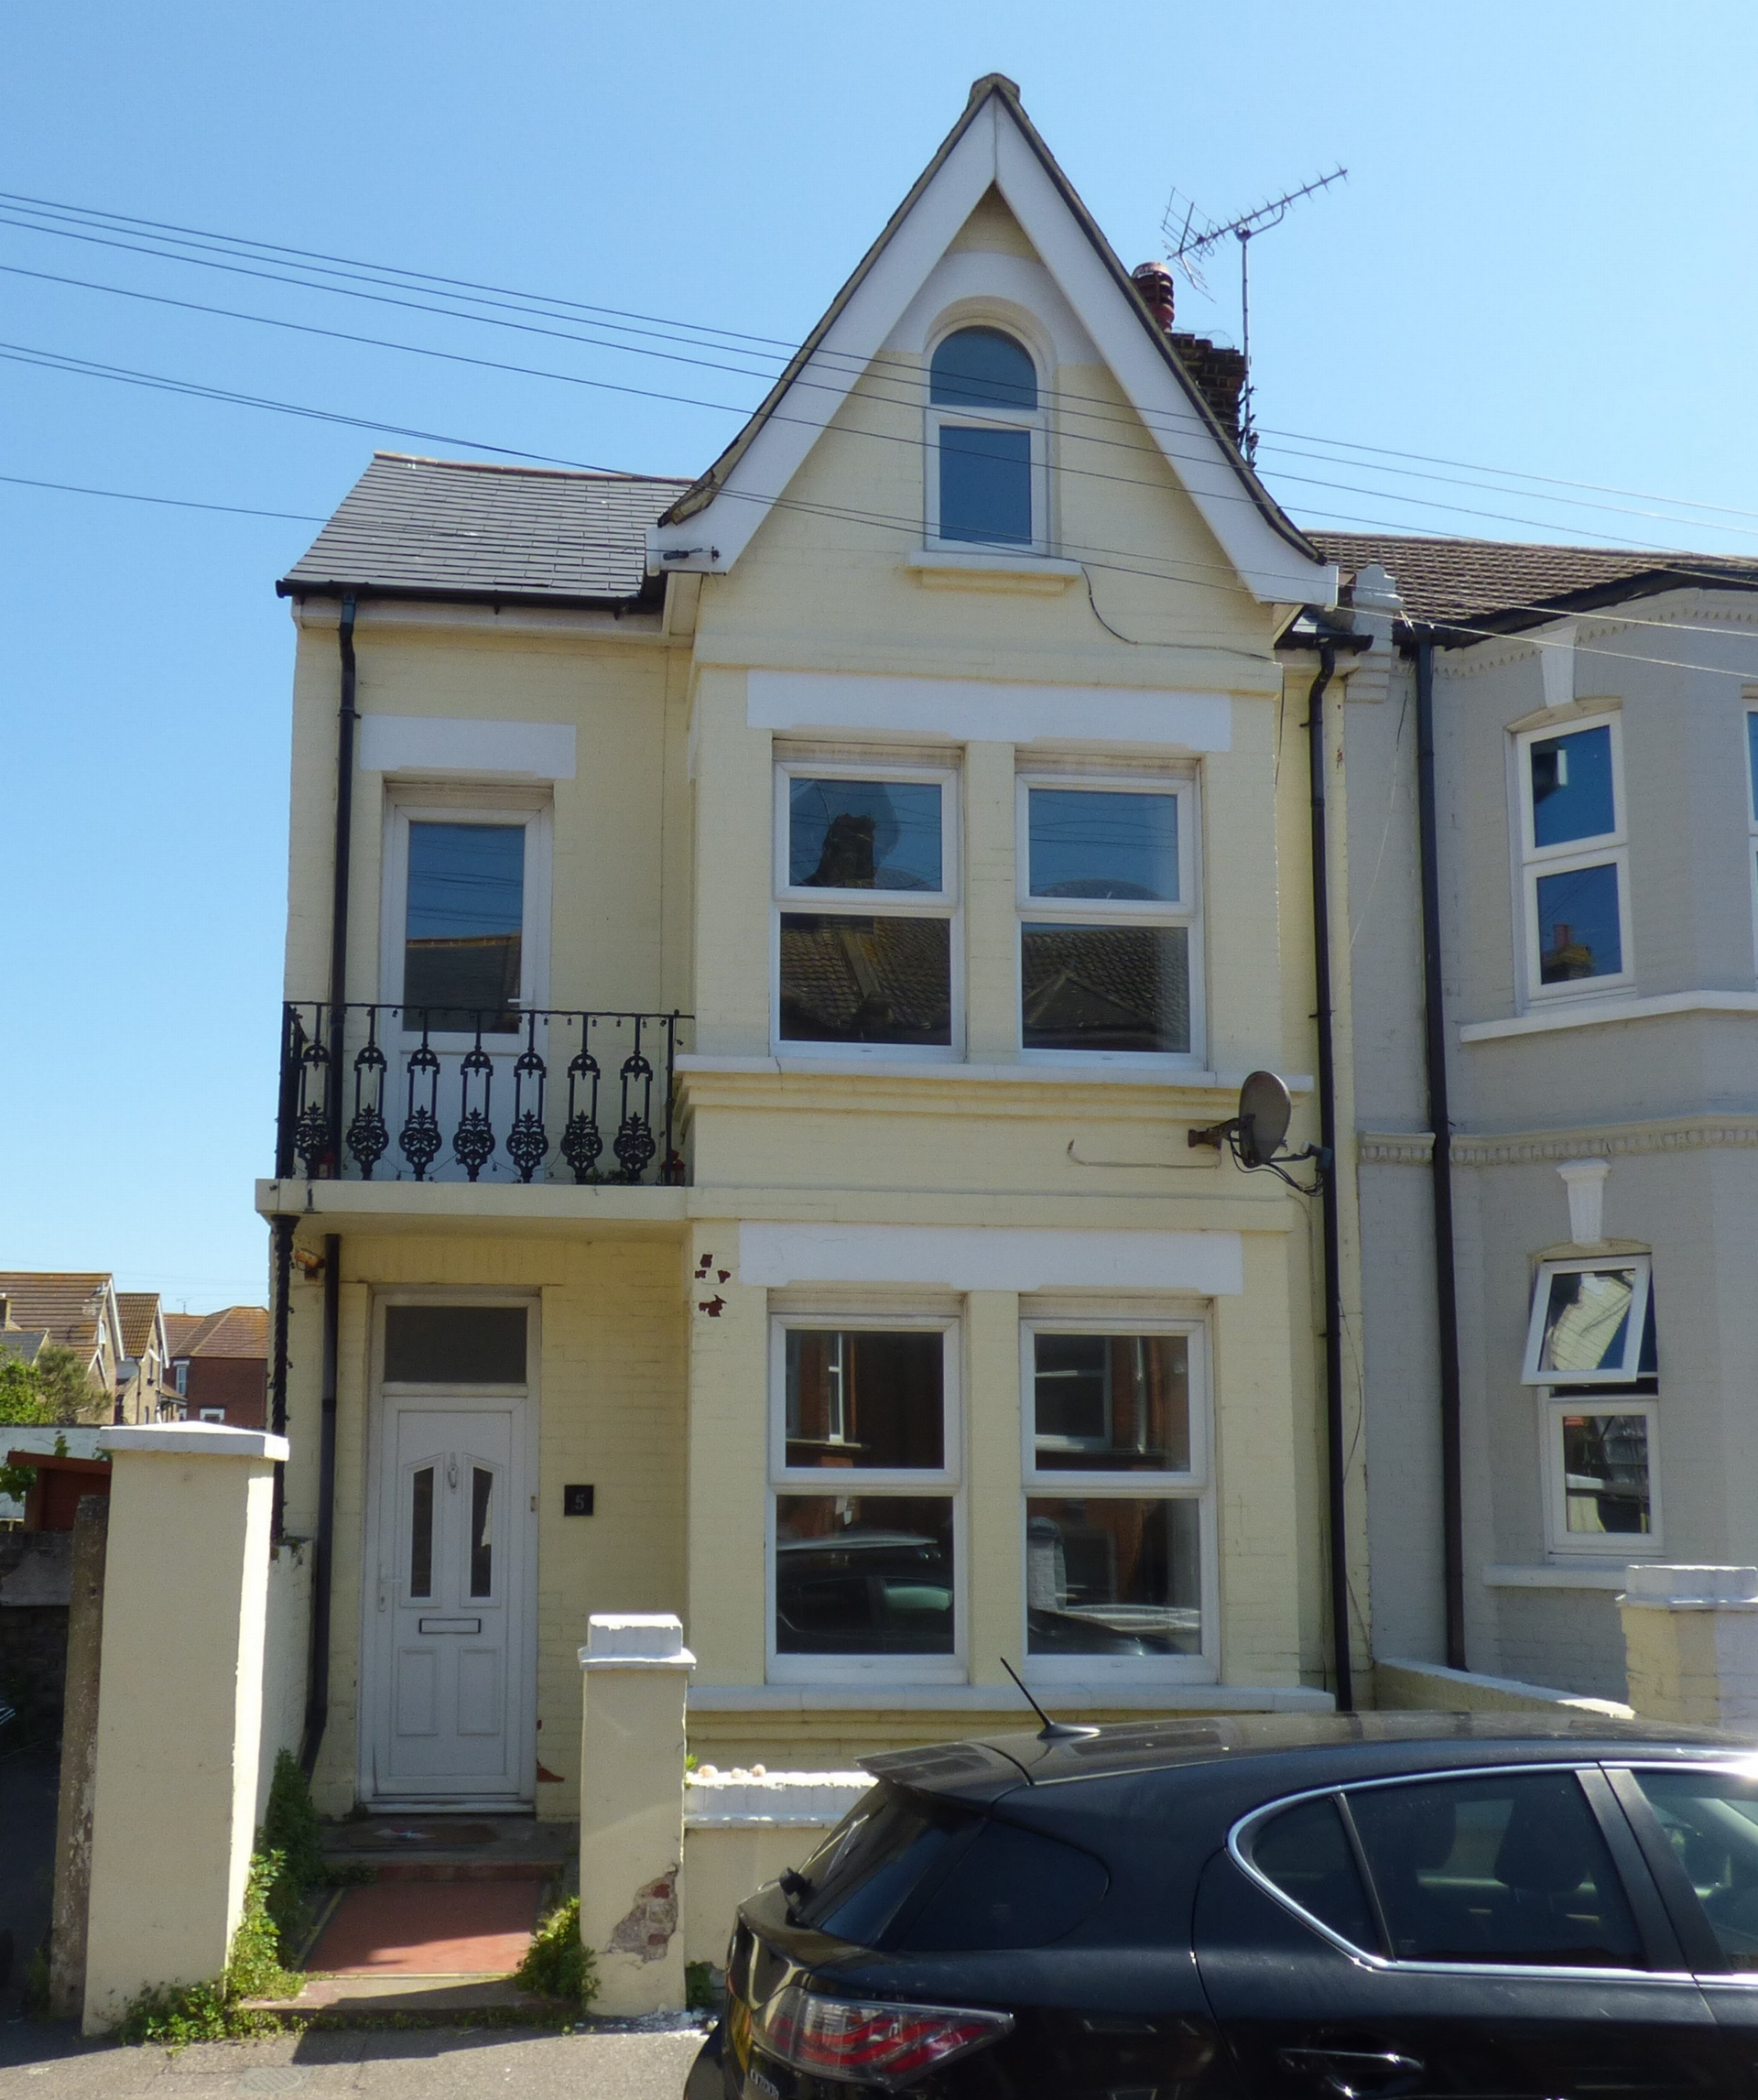 4 bed end of terrace house for sale in Crescent Road, Margate, CT9